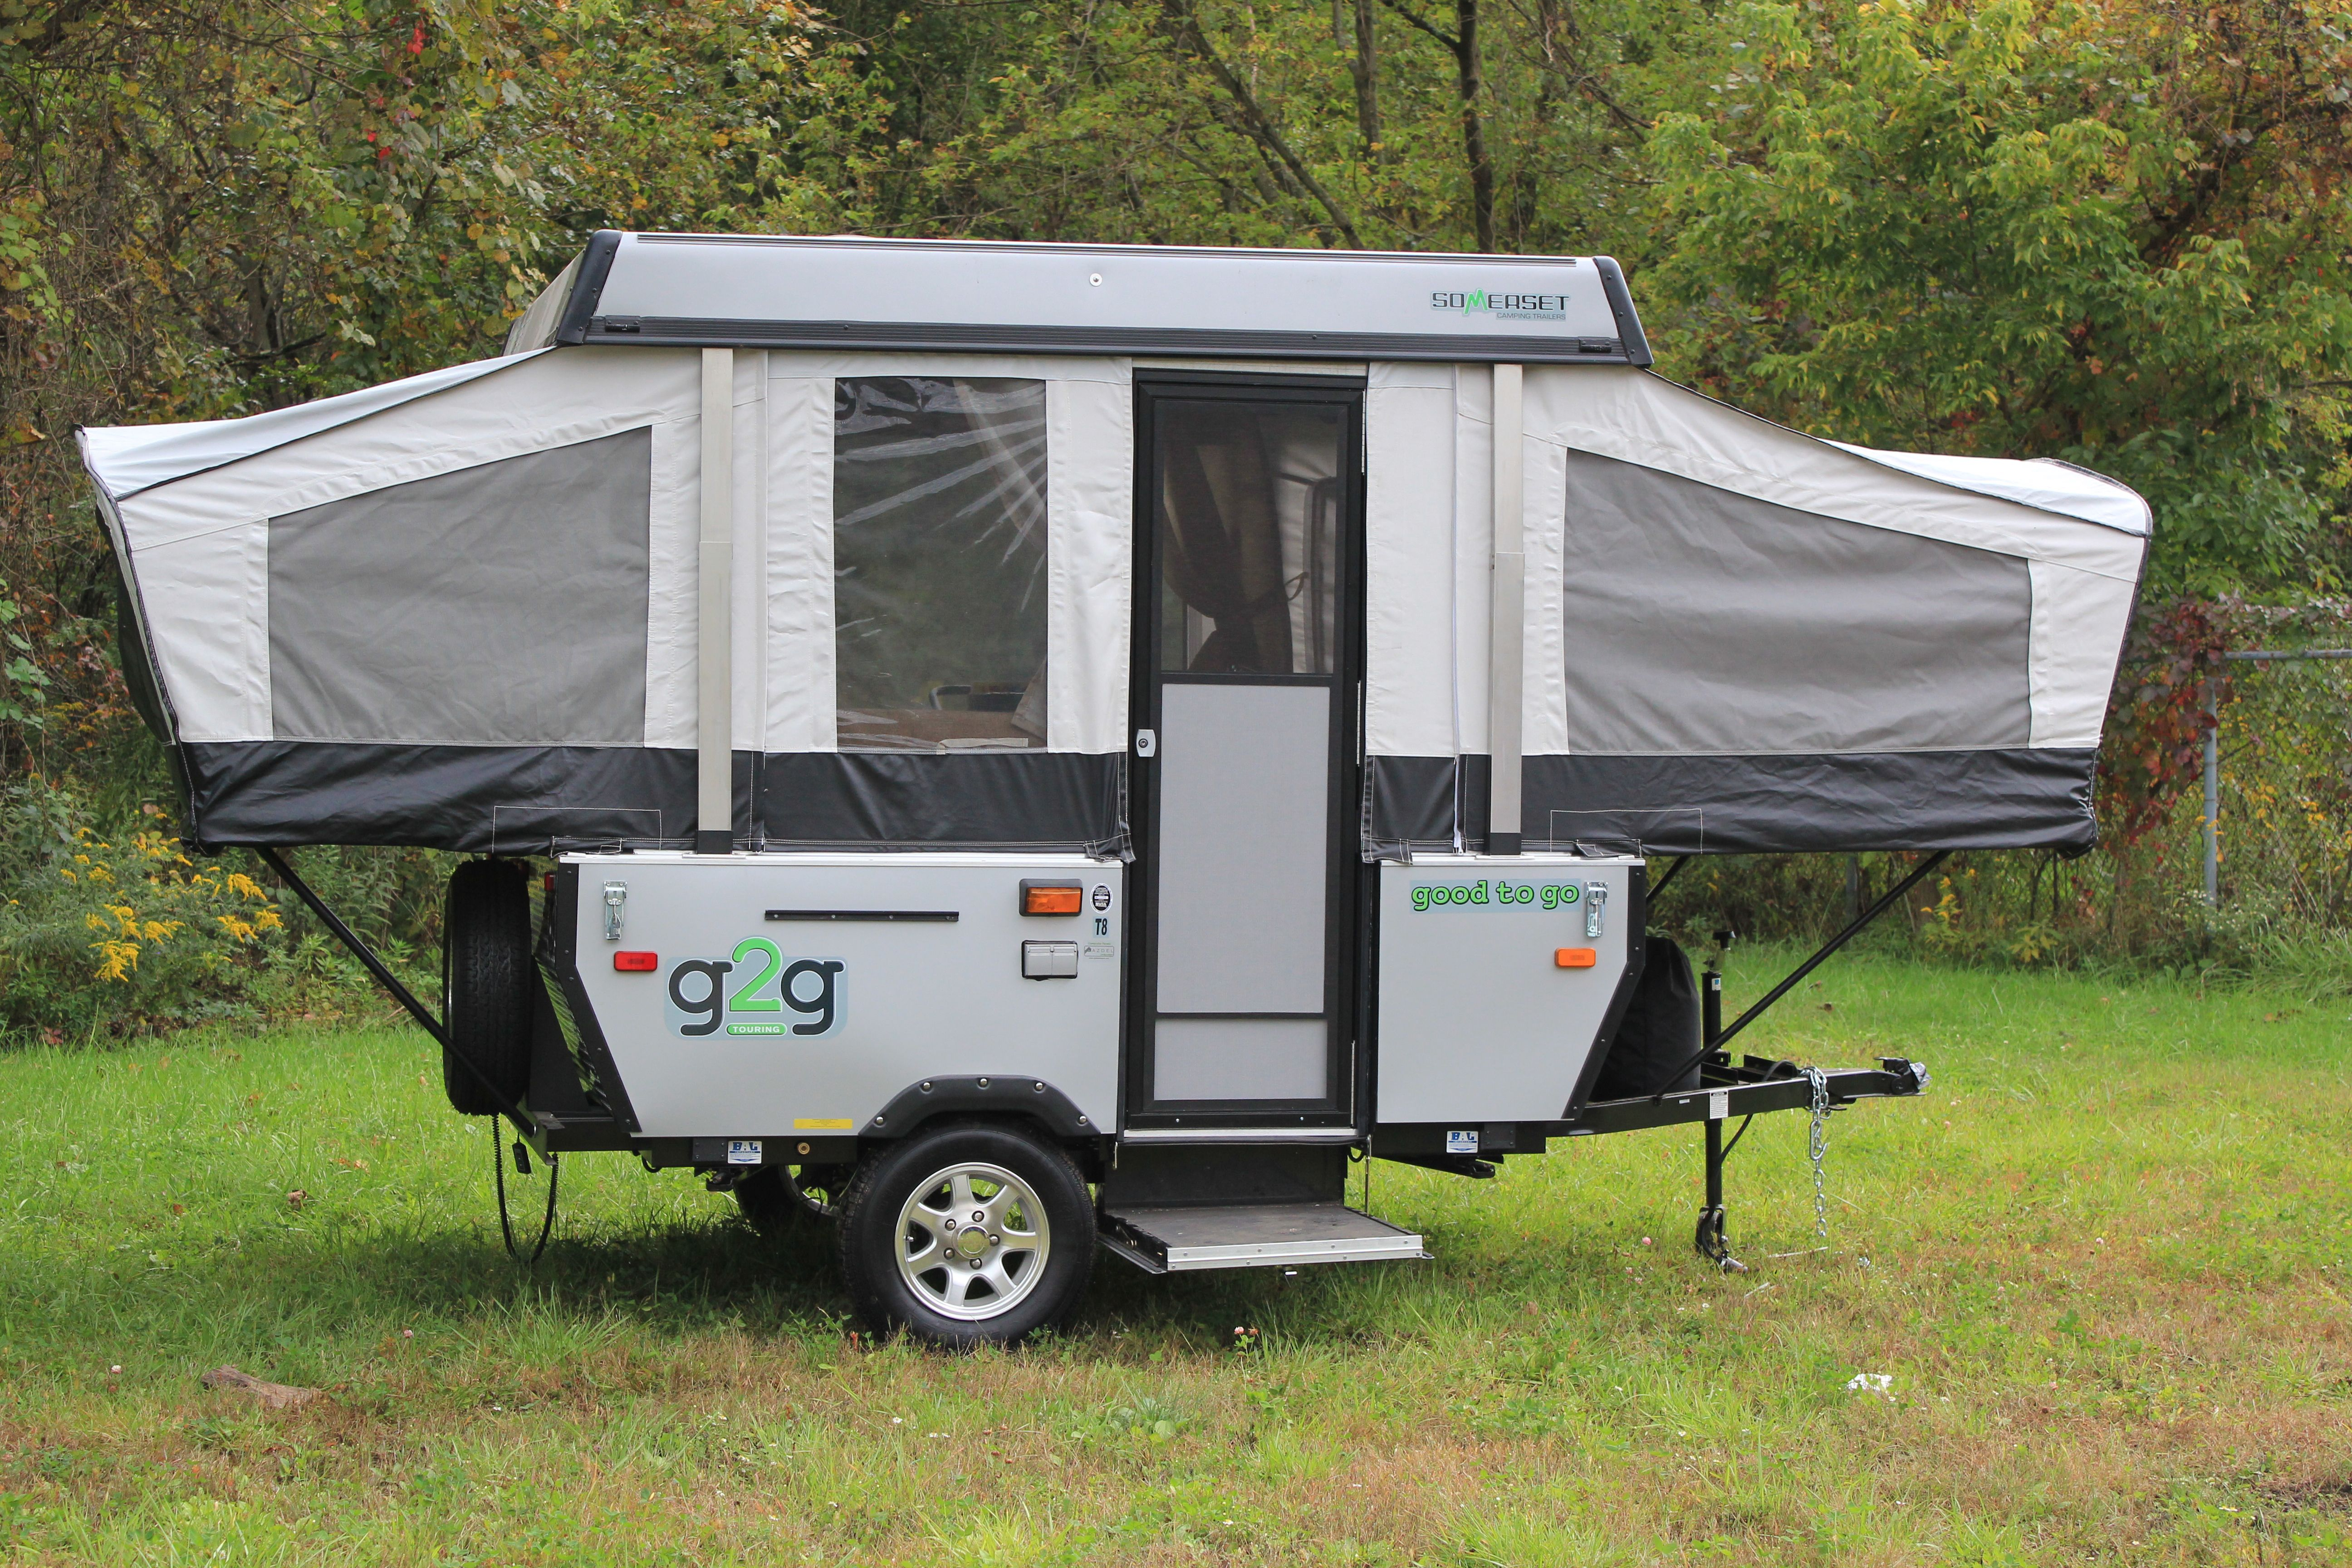 Tipping A Hat To Somerset Pennsylvania Where For More Than 40 Years Coleman Camping Trailers